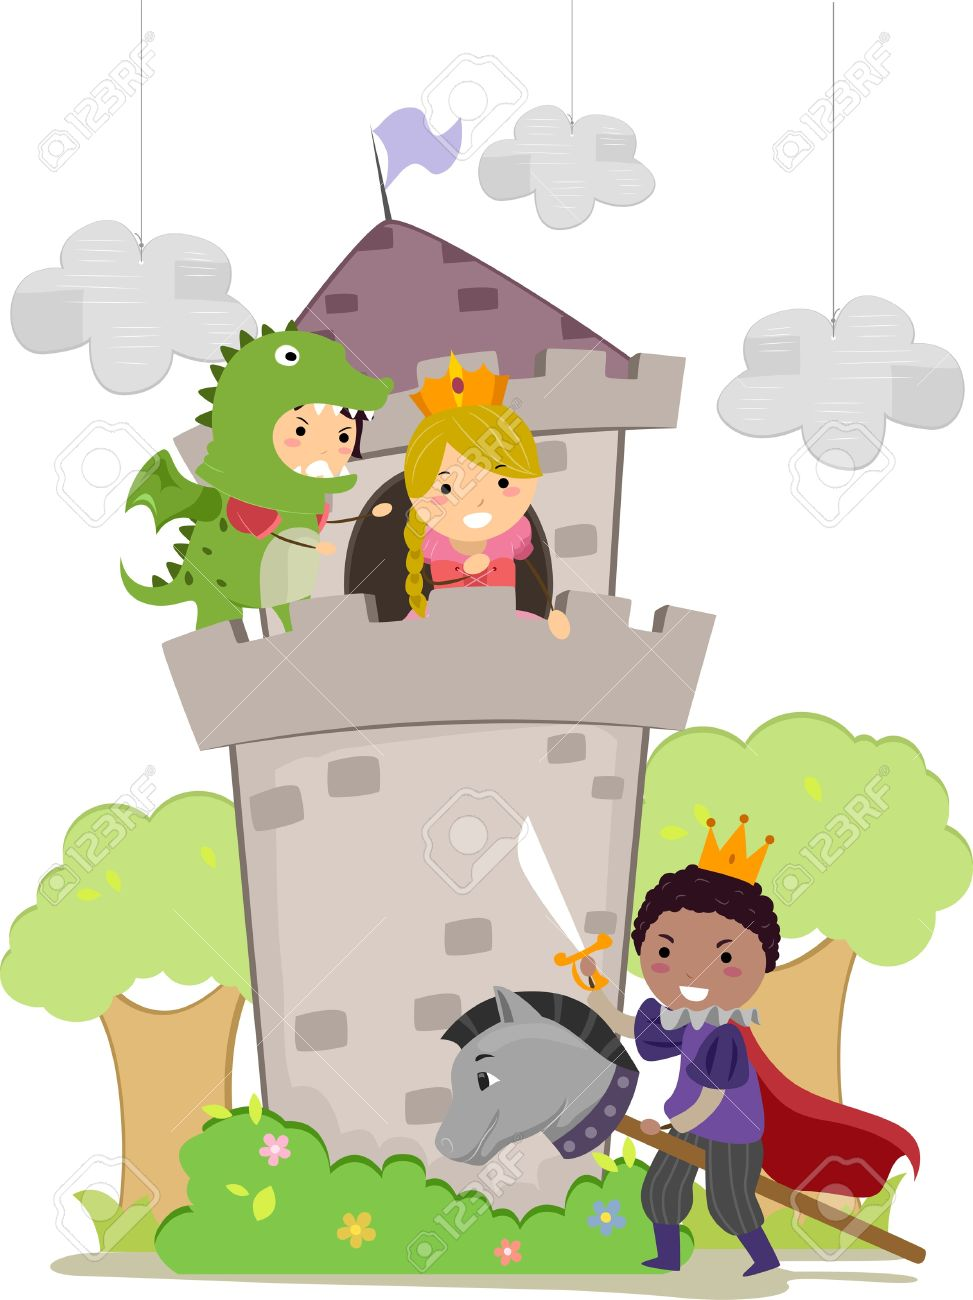 Illustration Of Stickman Kids Plays Dragon, Prince, And Princess.